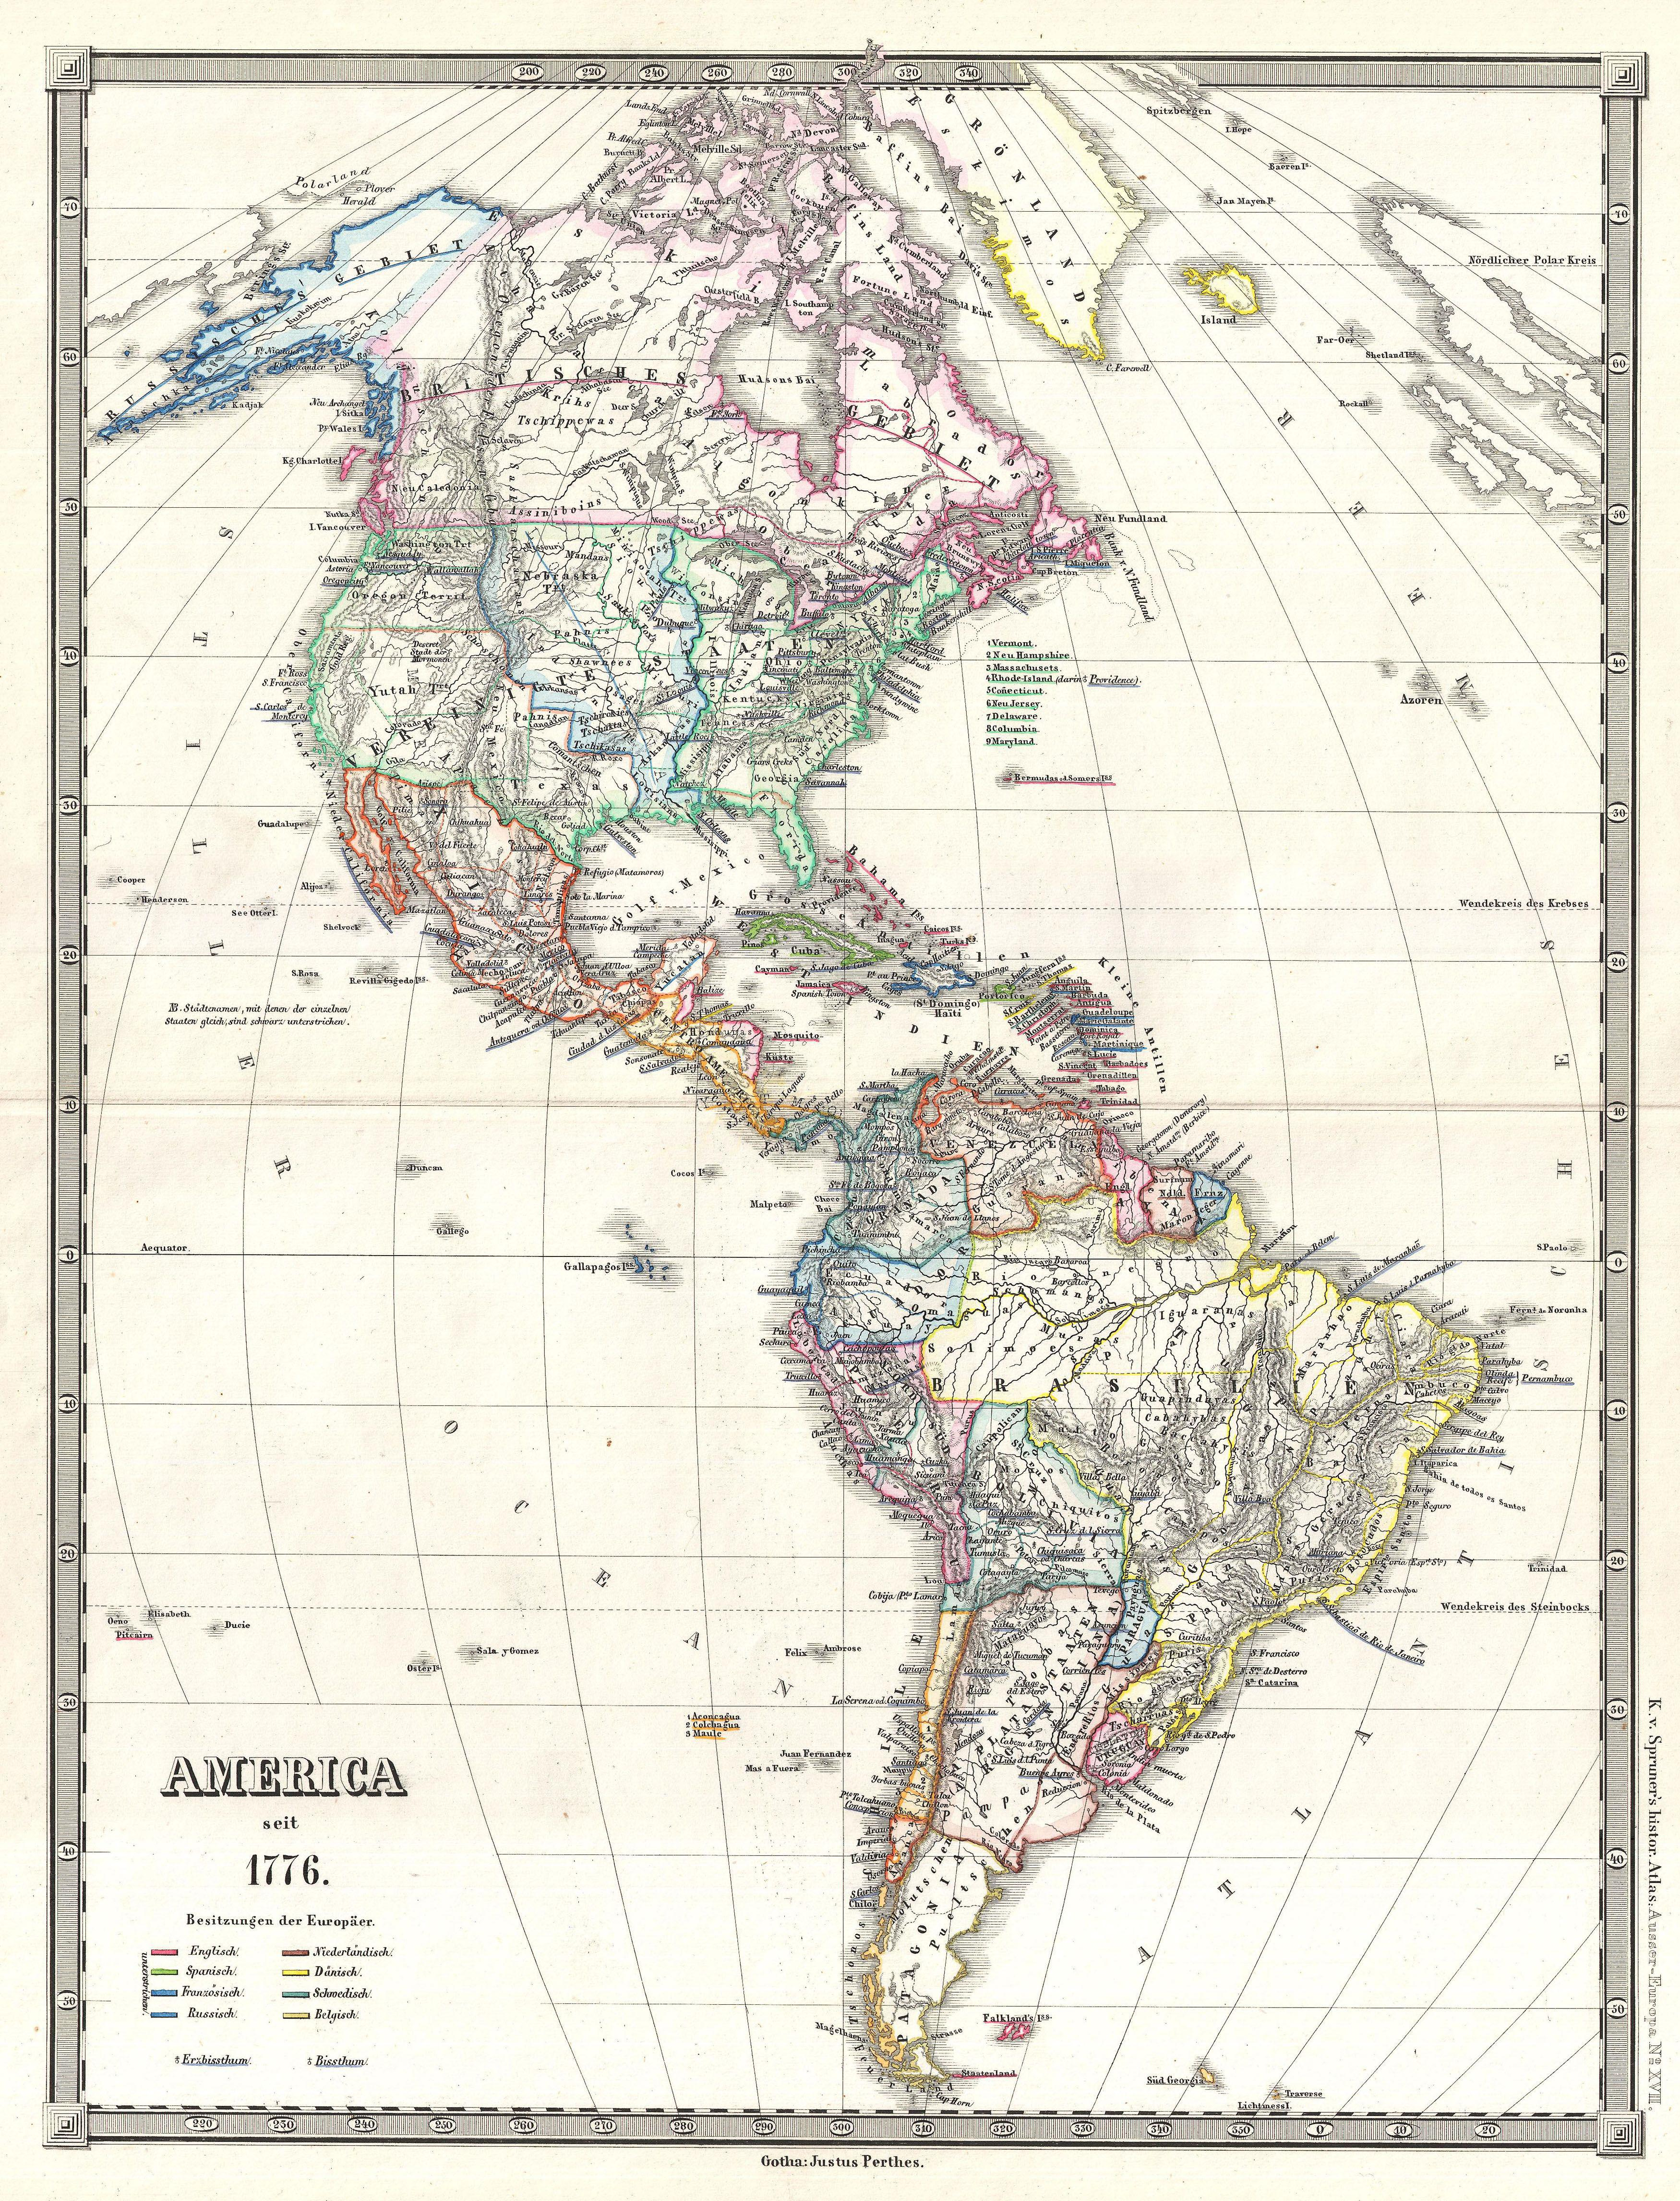 americas political map with File 1855 Spruner Map Of The Americas Since 1776   Geographicus   Americasseit1776 Spruner 1855 on Stock Illustration Colorful Americas Political Map likewise Ecuador together with Americas Caps Quiz together with Index further Americas Micronesia Problem.